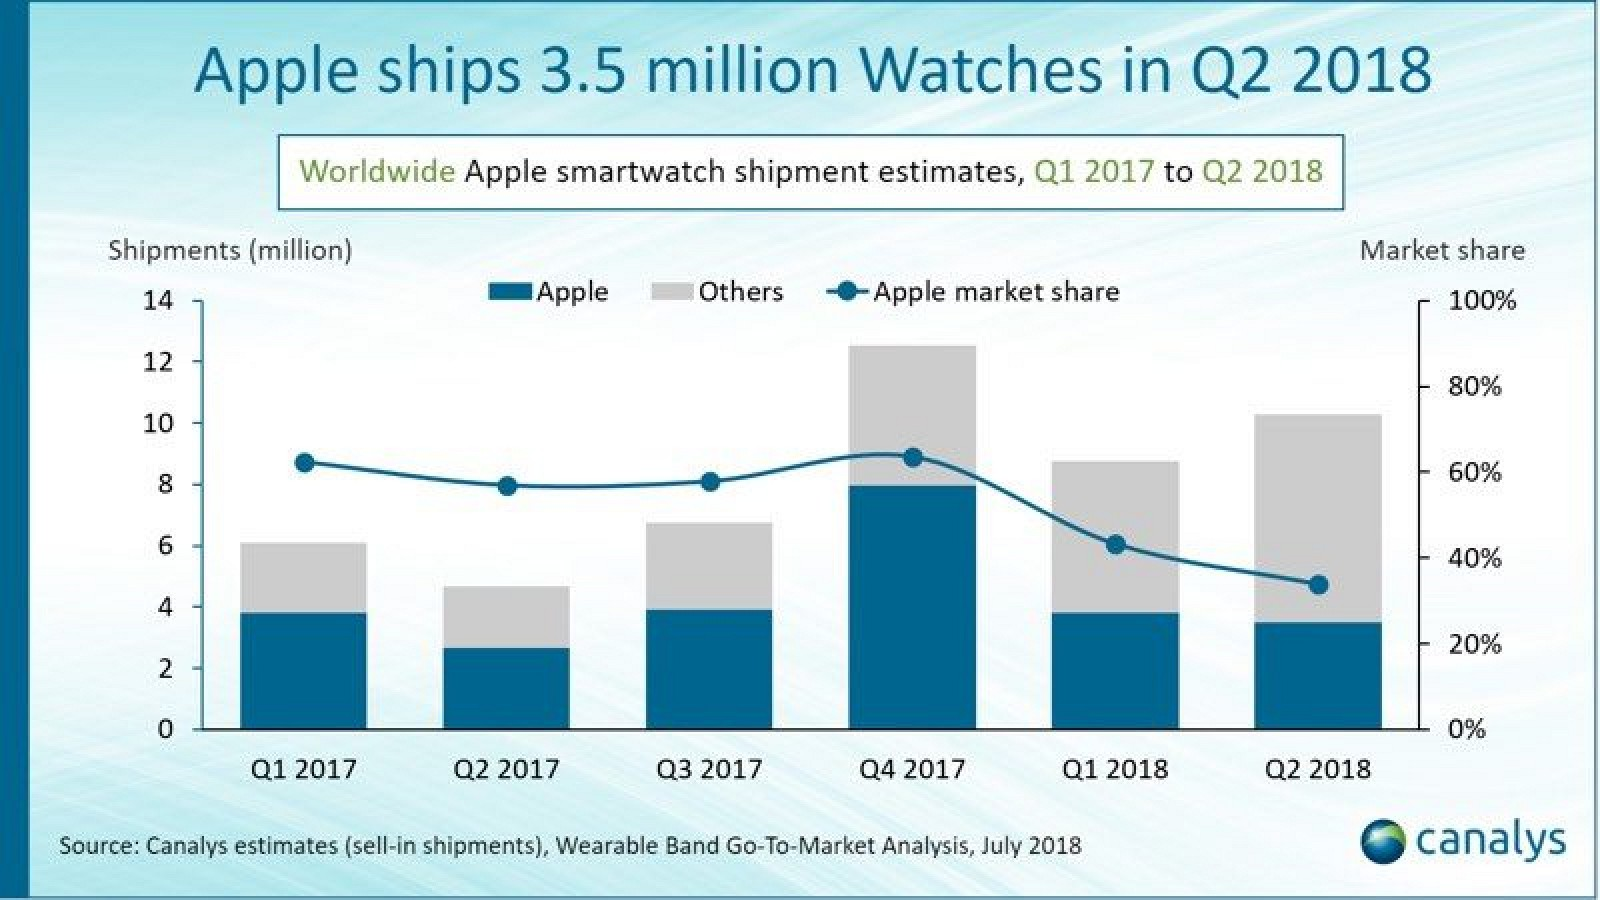 Apple Shipped 3.5M Watches in Q2 2018, 30% More than Last Year